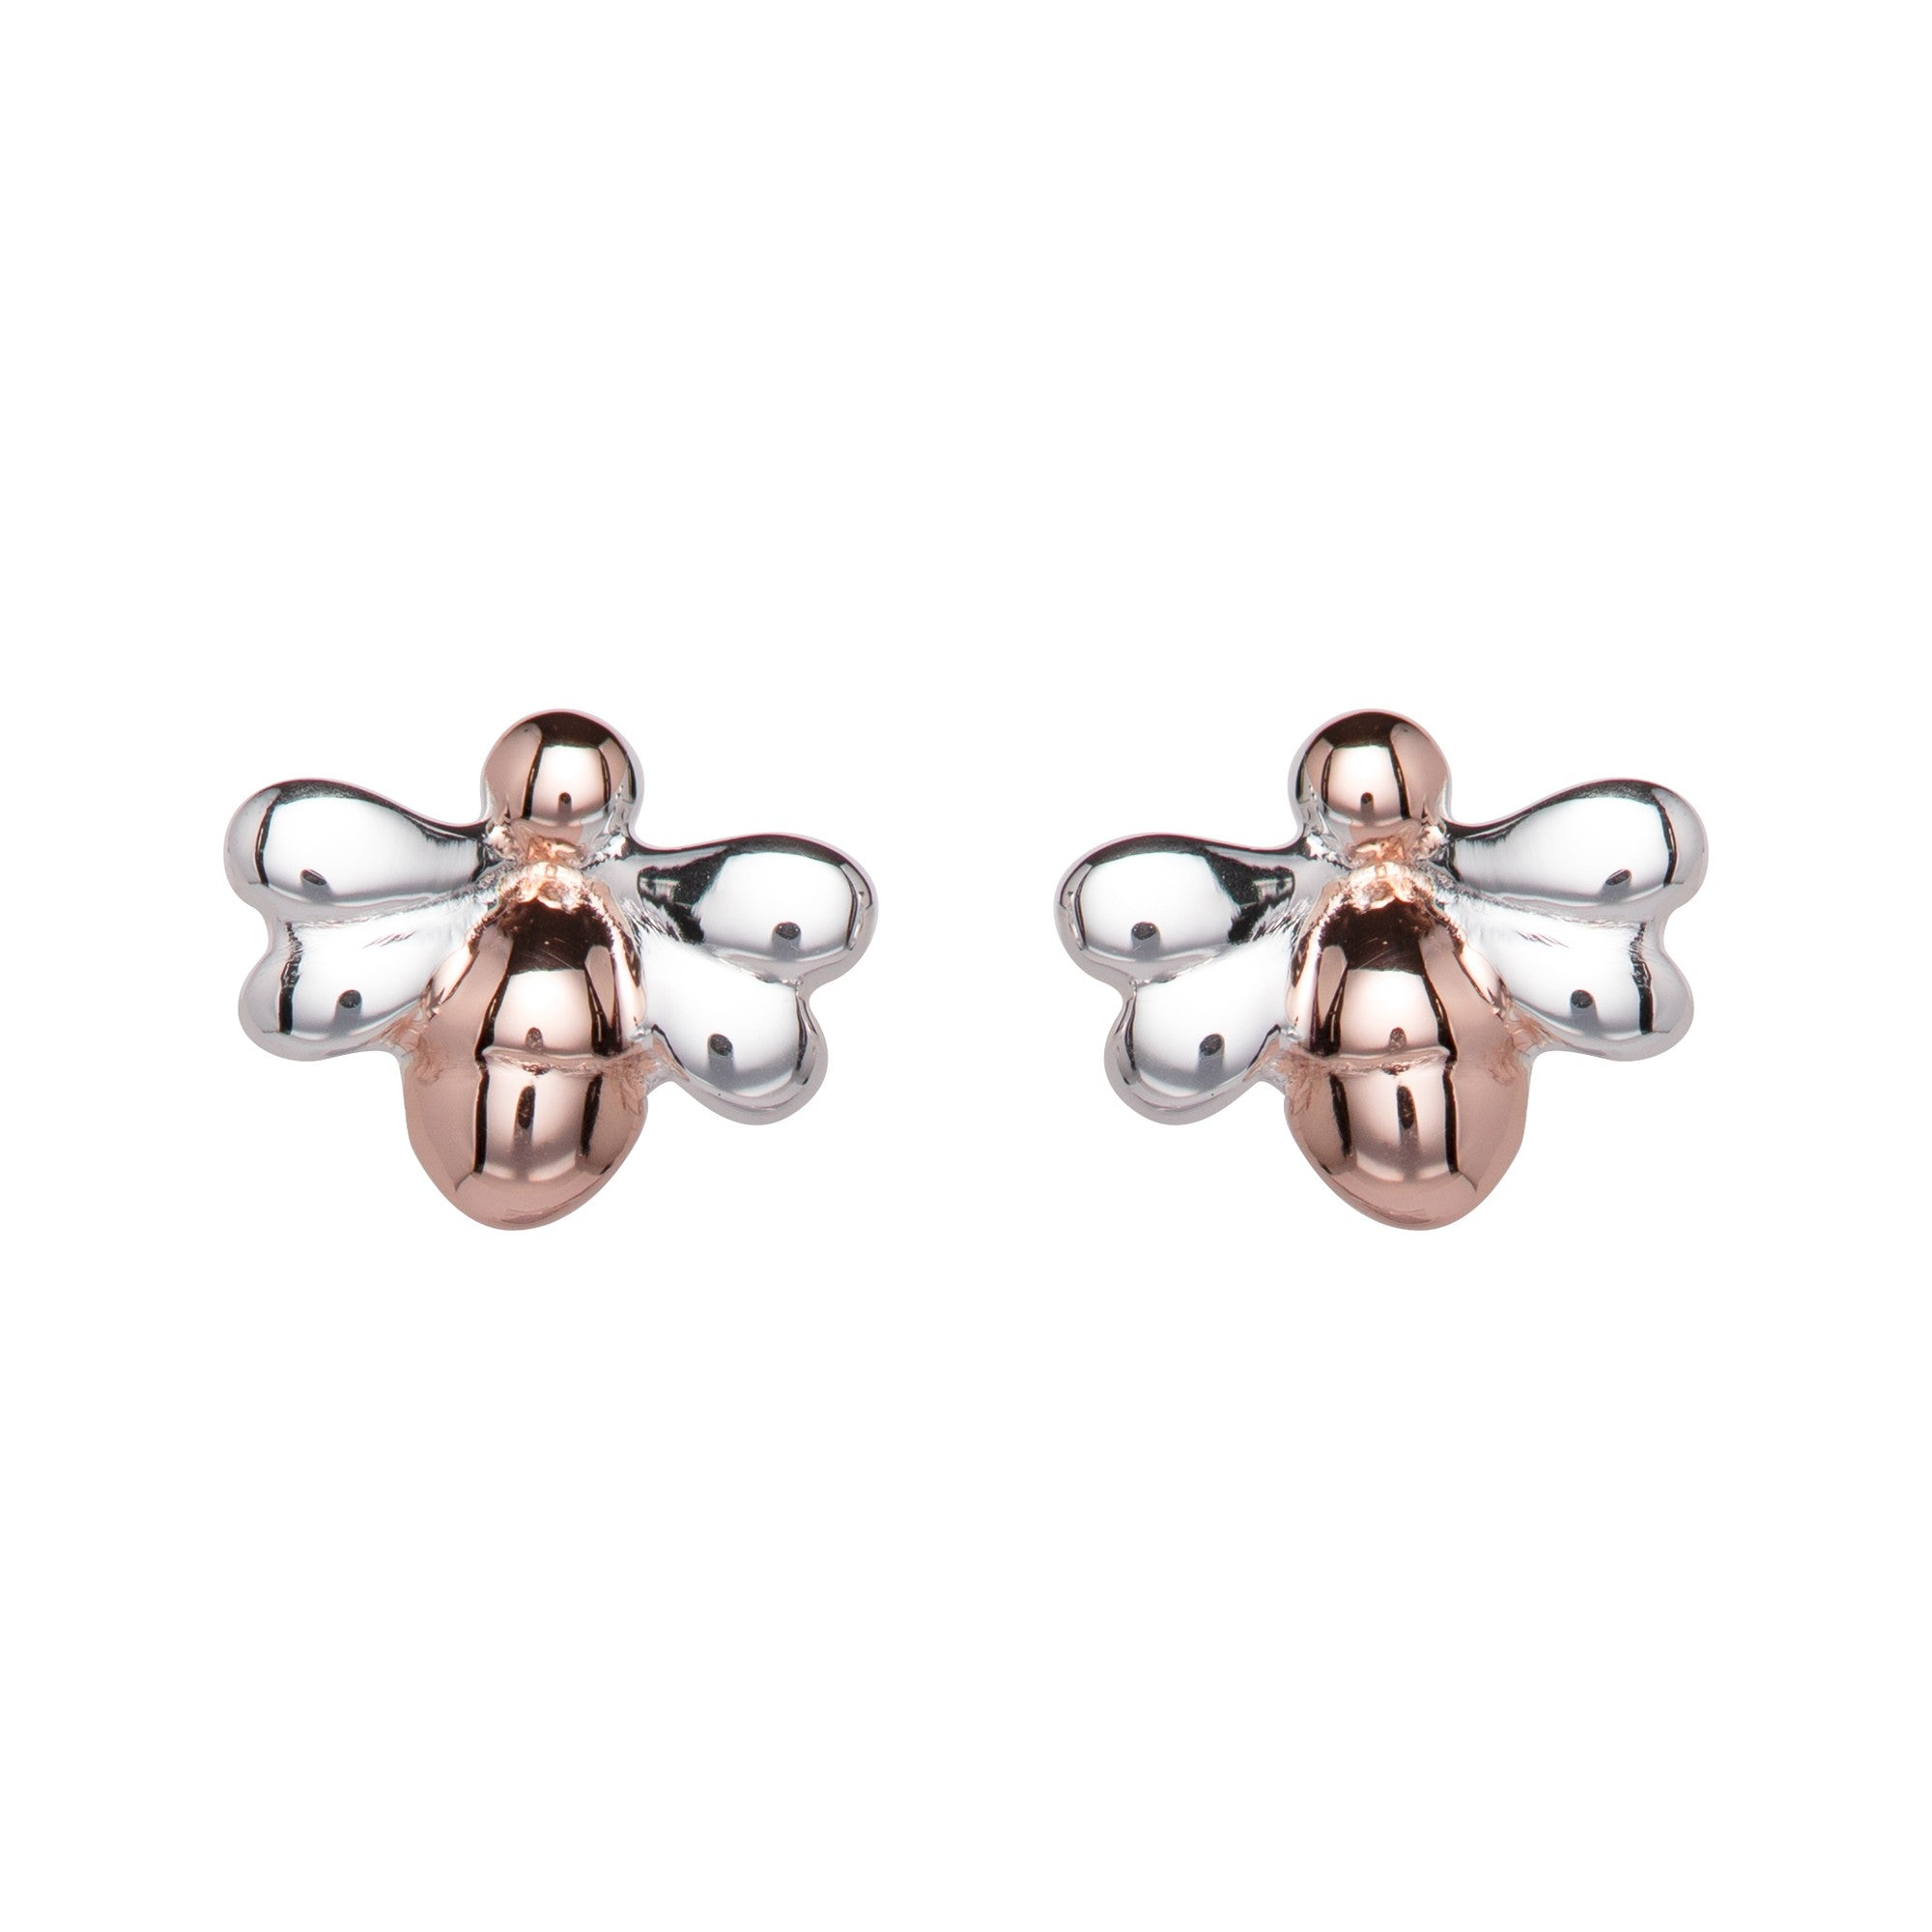 Unique Silver and Rose Gold Bee Earrings